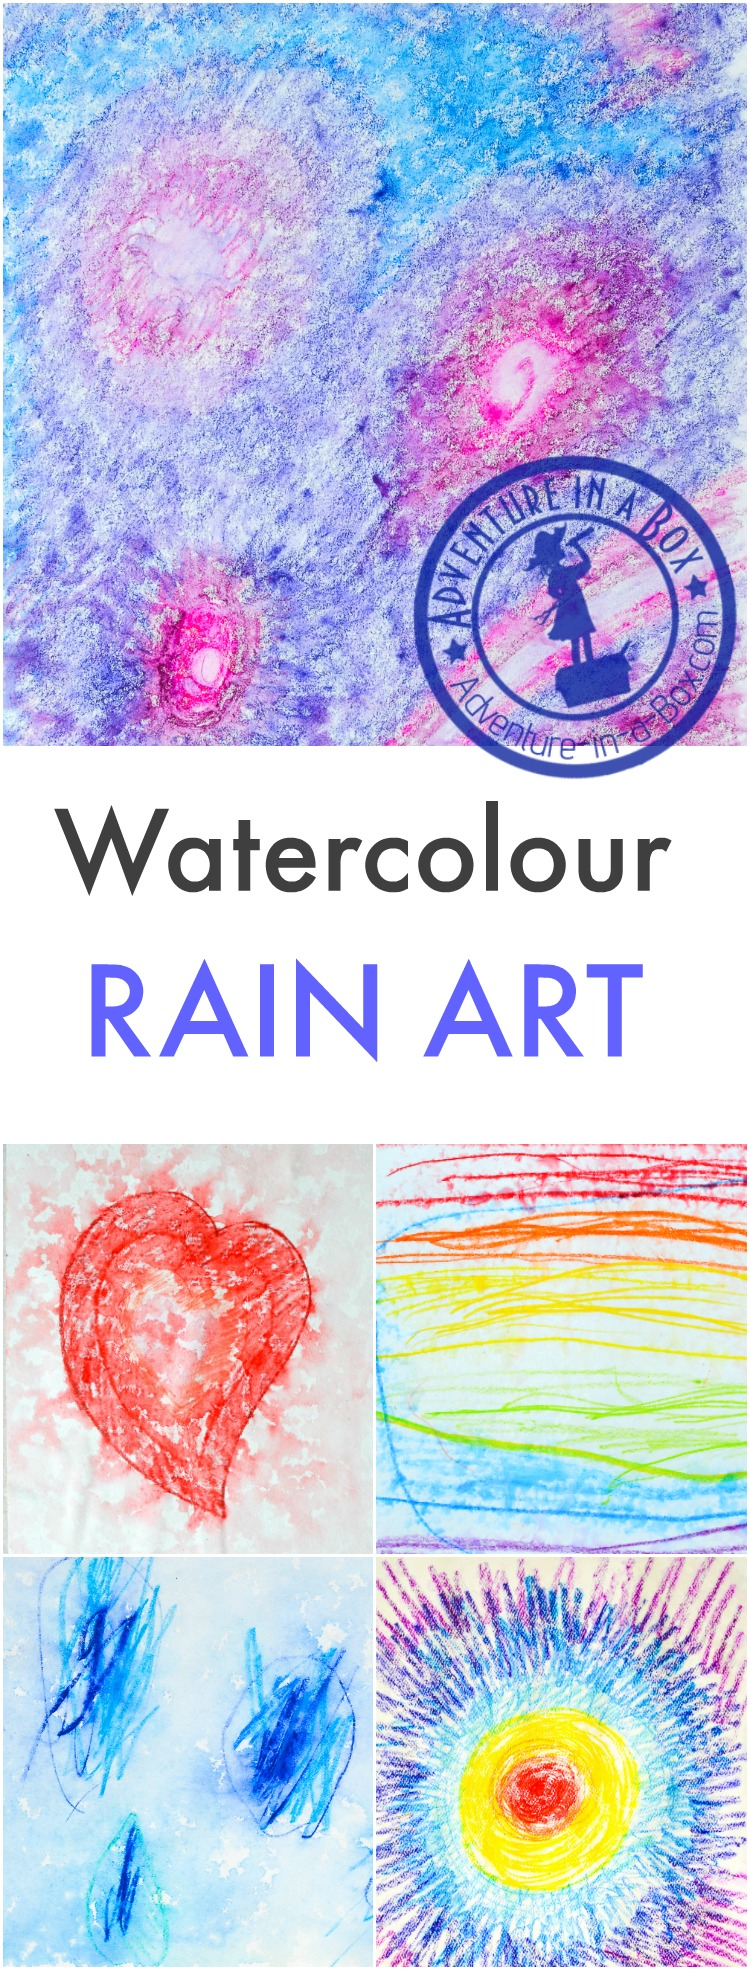 On a rainy day, grab watercolour pencils, then go outside and make rain art together with kids! Making rain paintings is a great summer and fall activity.